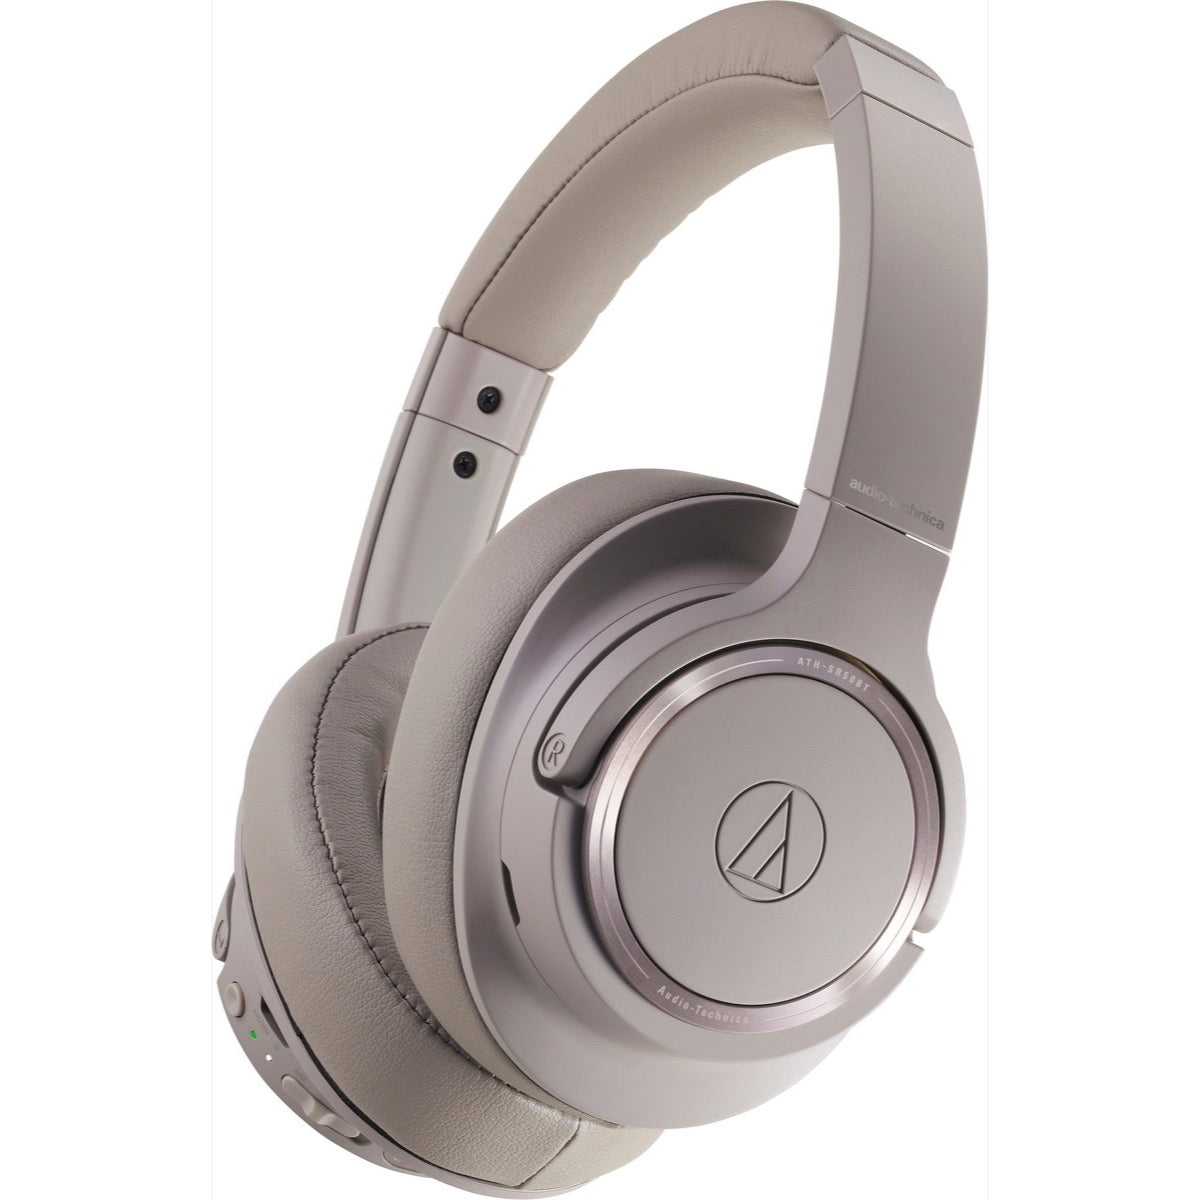 Audio-Technica ATH-SR50BT Wireless Headphones, Gray